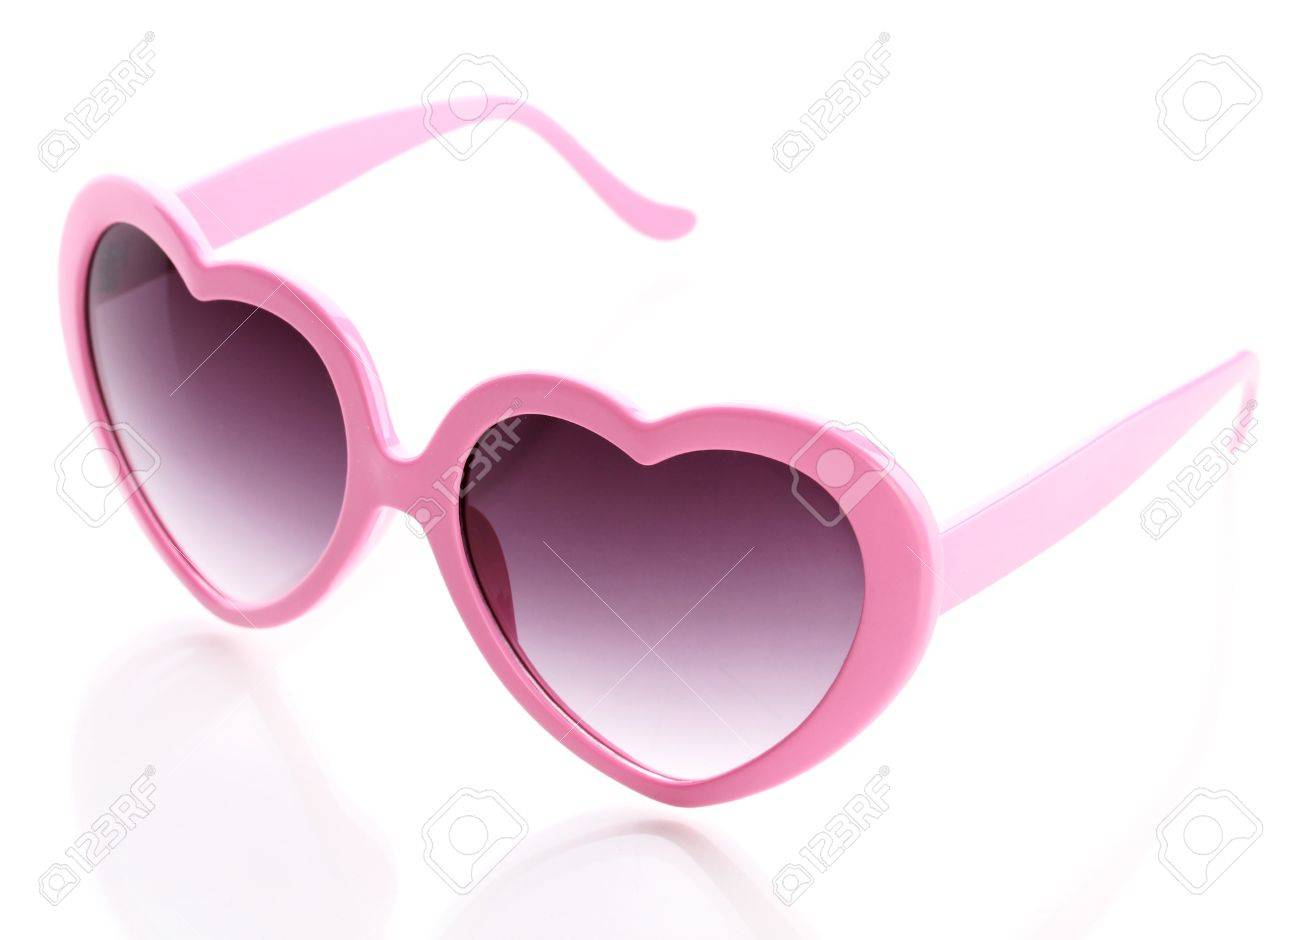 50ea13af4c Pink heart-shaped sunglasses isolated on white Stock Photo - 14956101